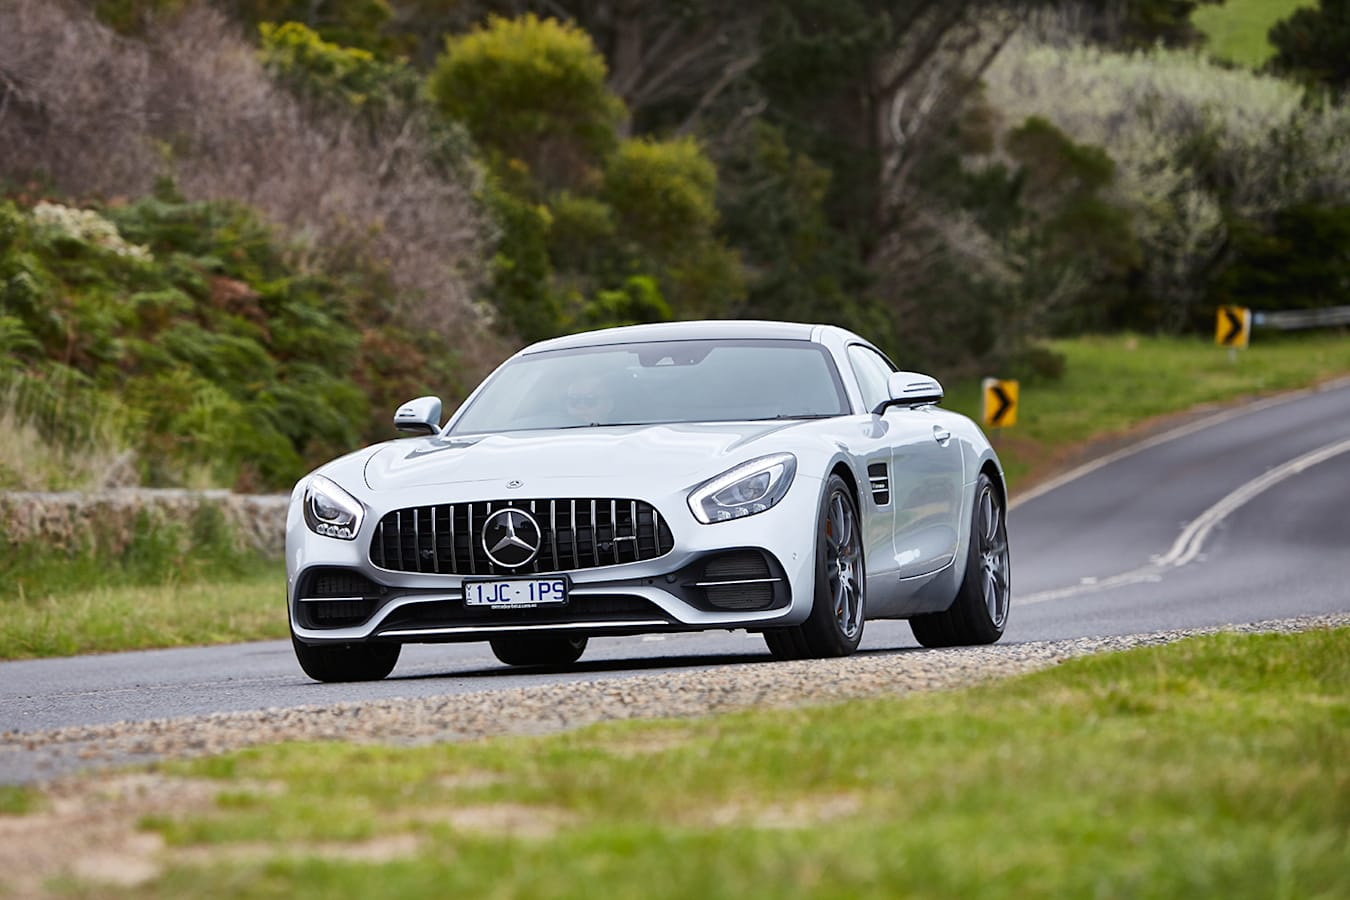 Mercedes-AMG GT S Coupe